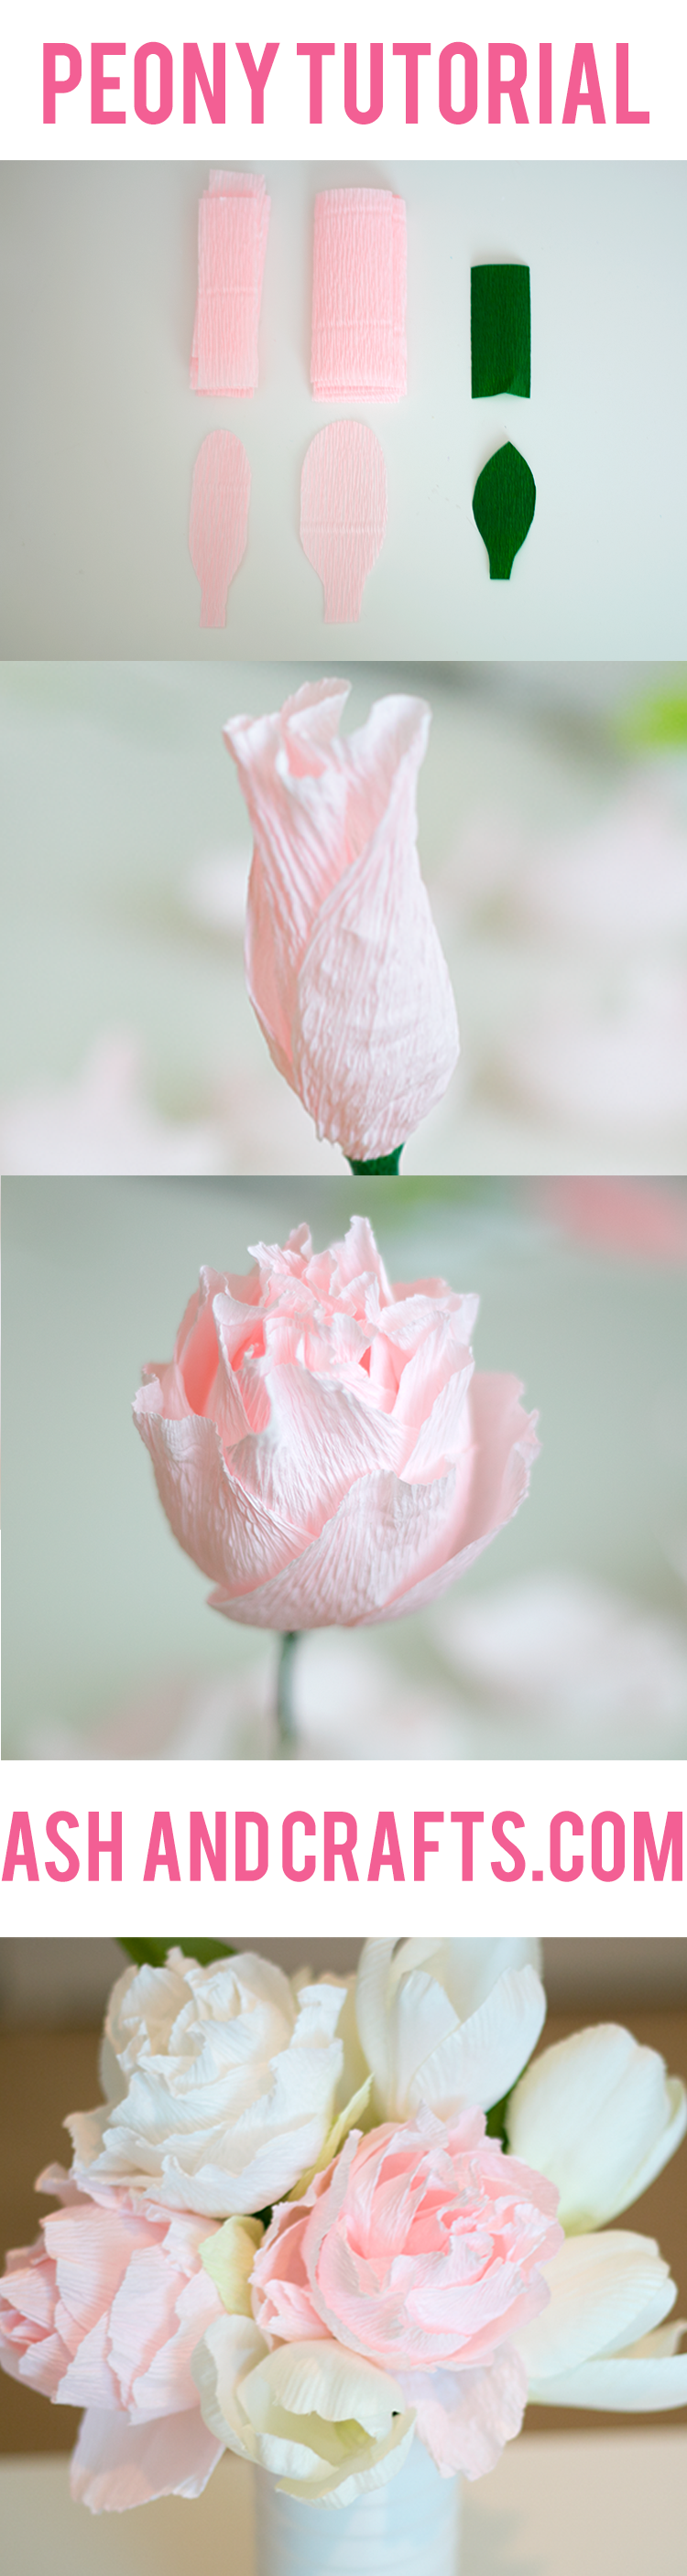 Paper peony tutorial ash and crafts jeuxipadfo Choice Image